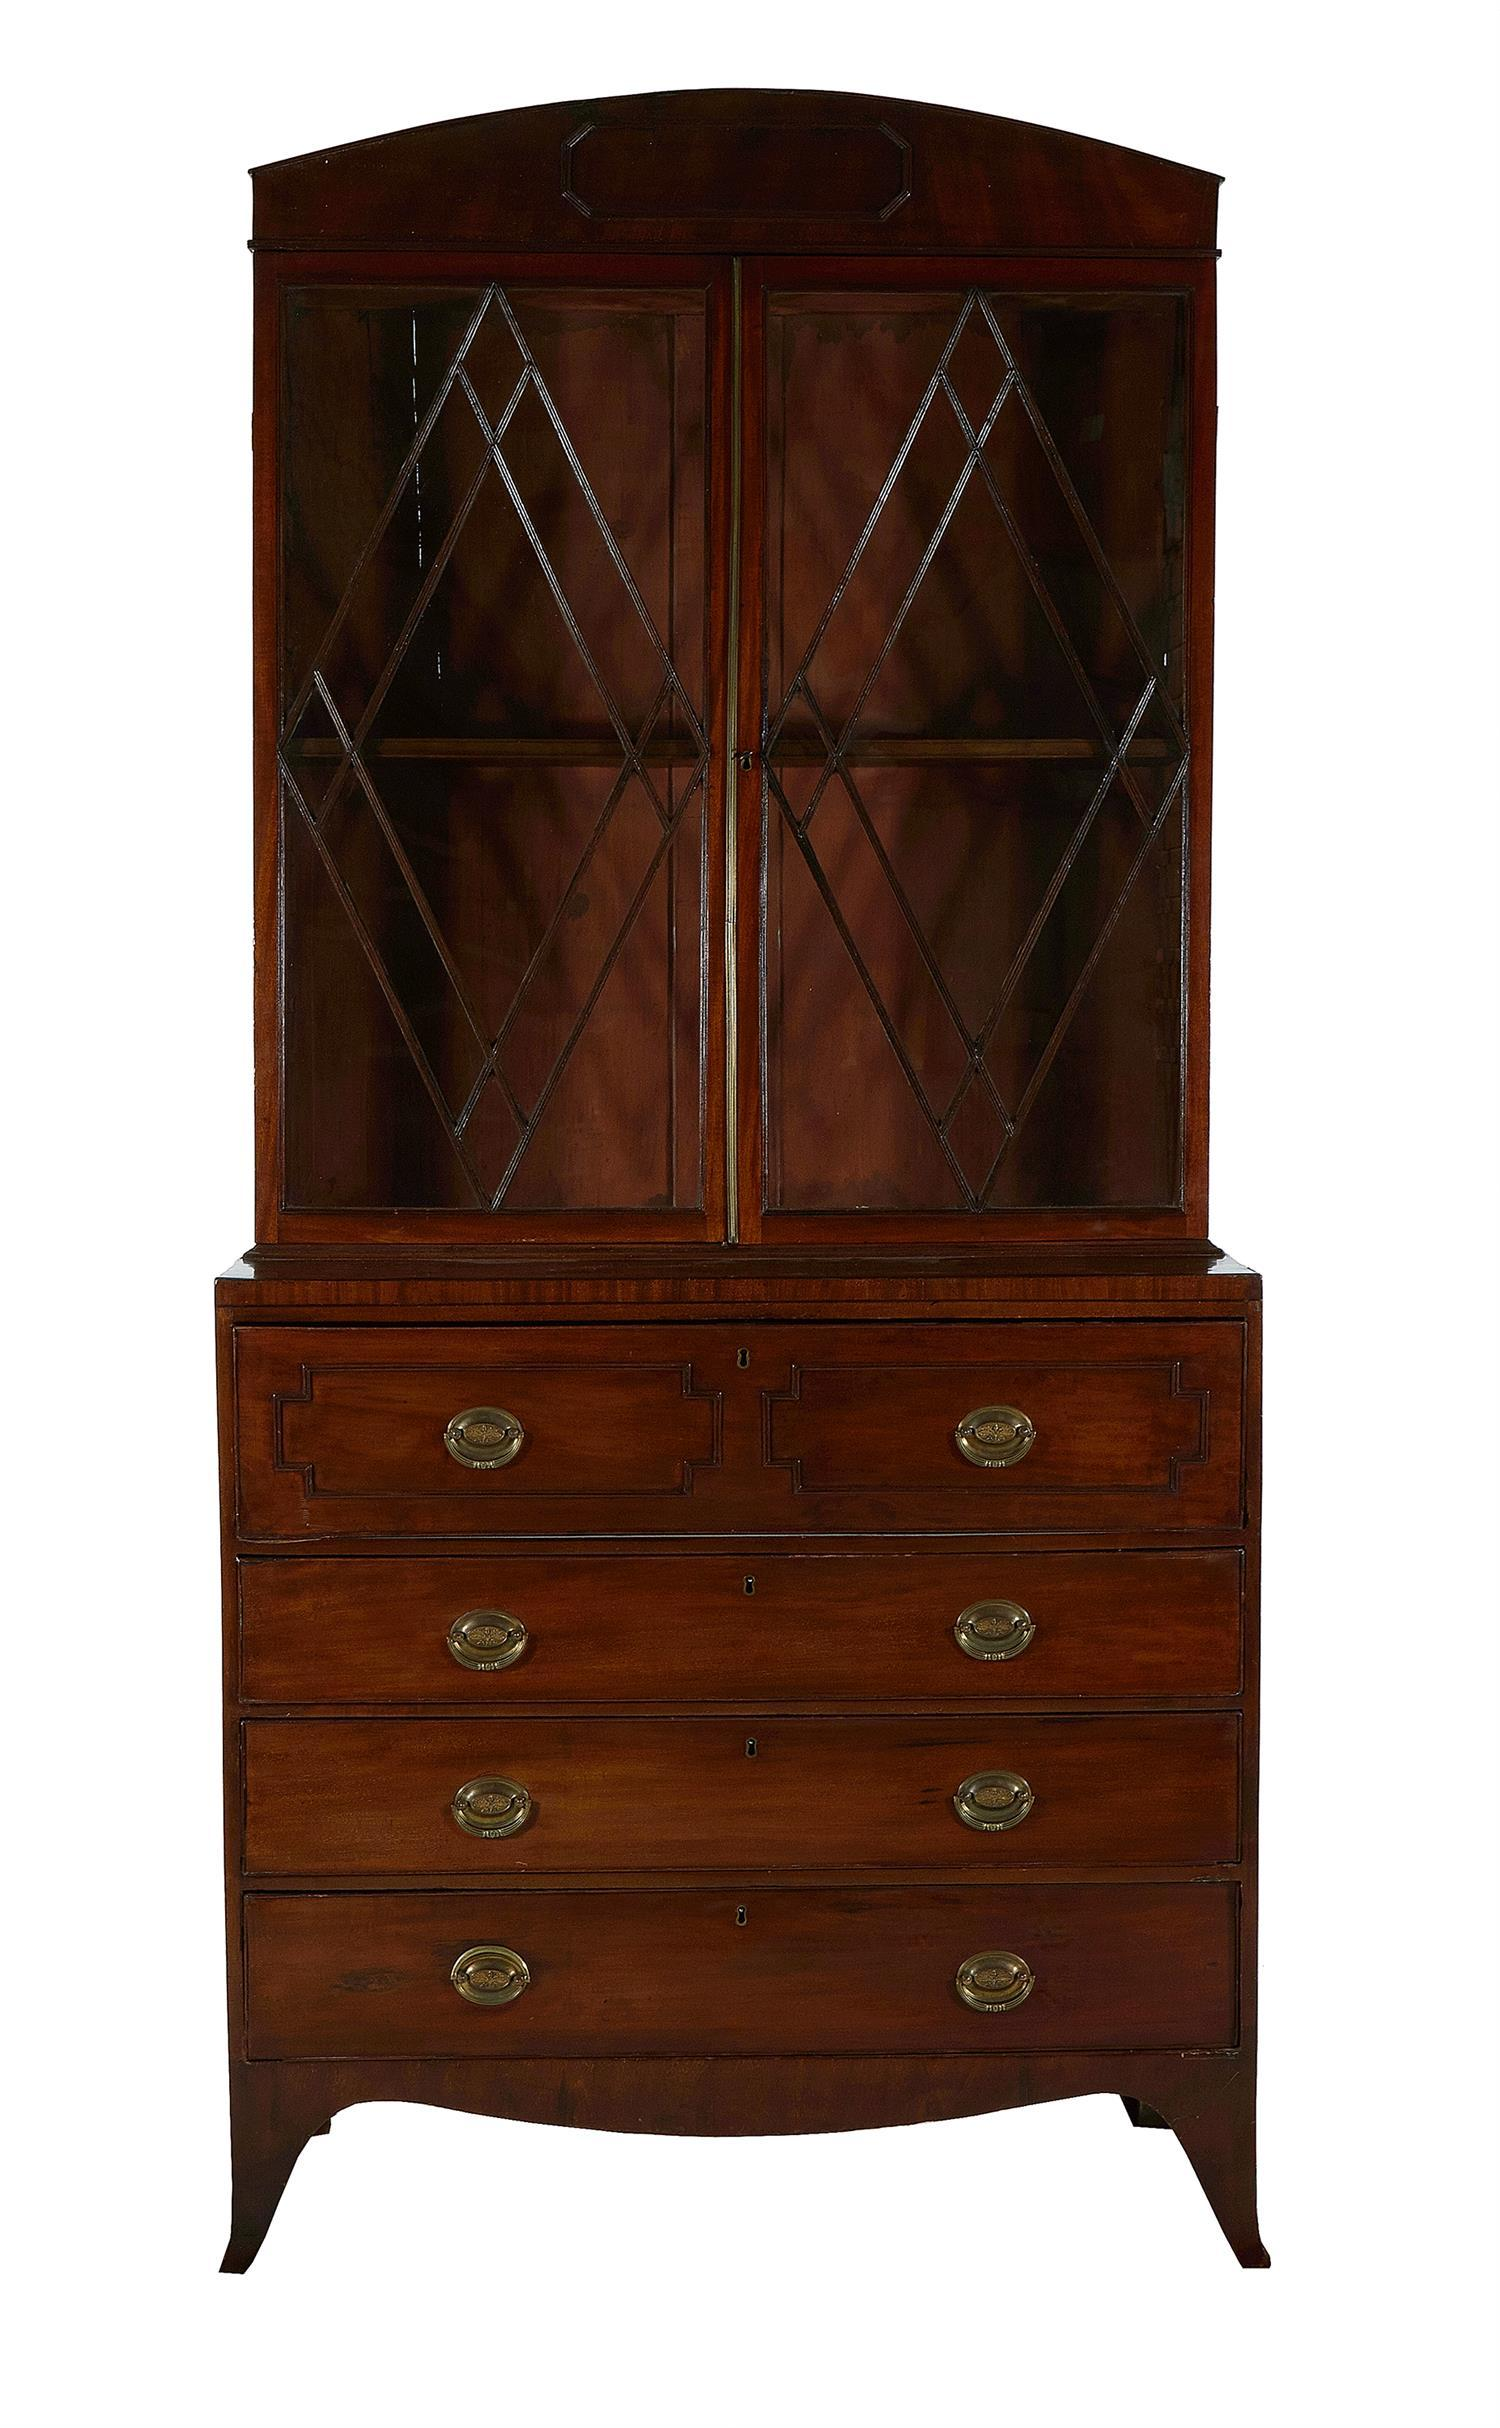 Regency mahogany secretary bookcase